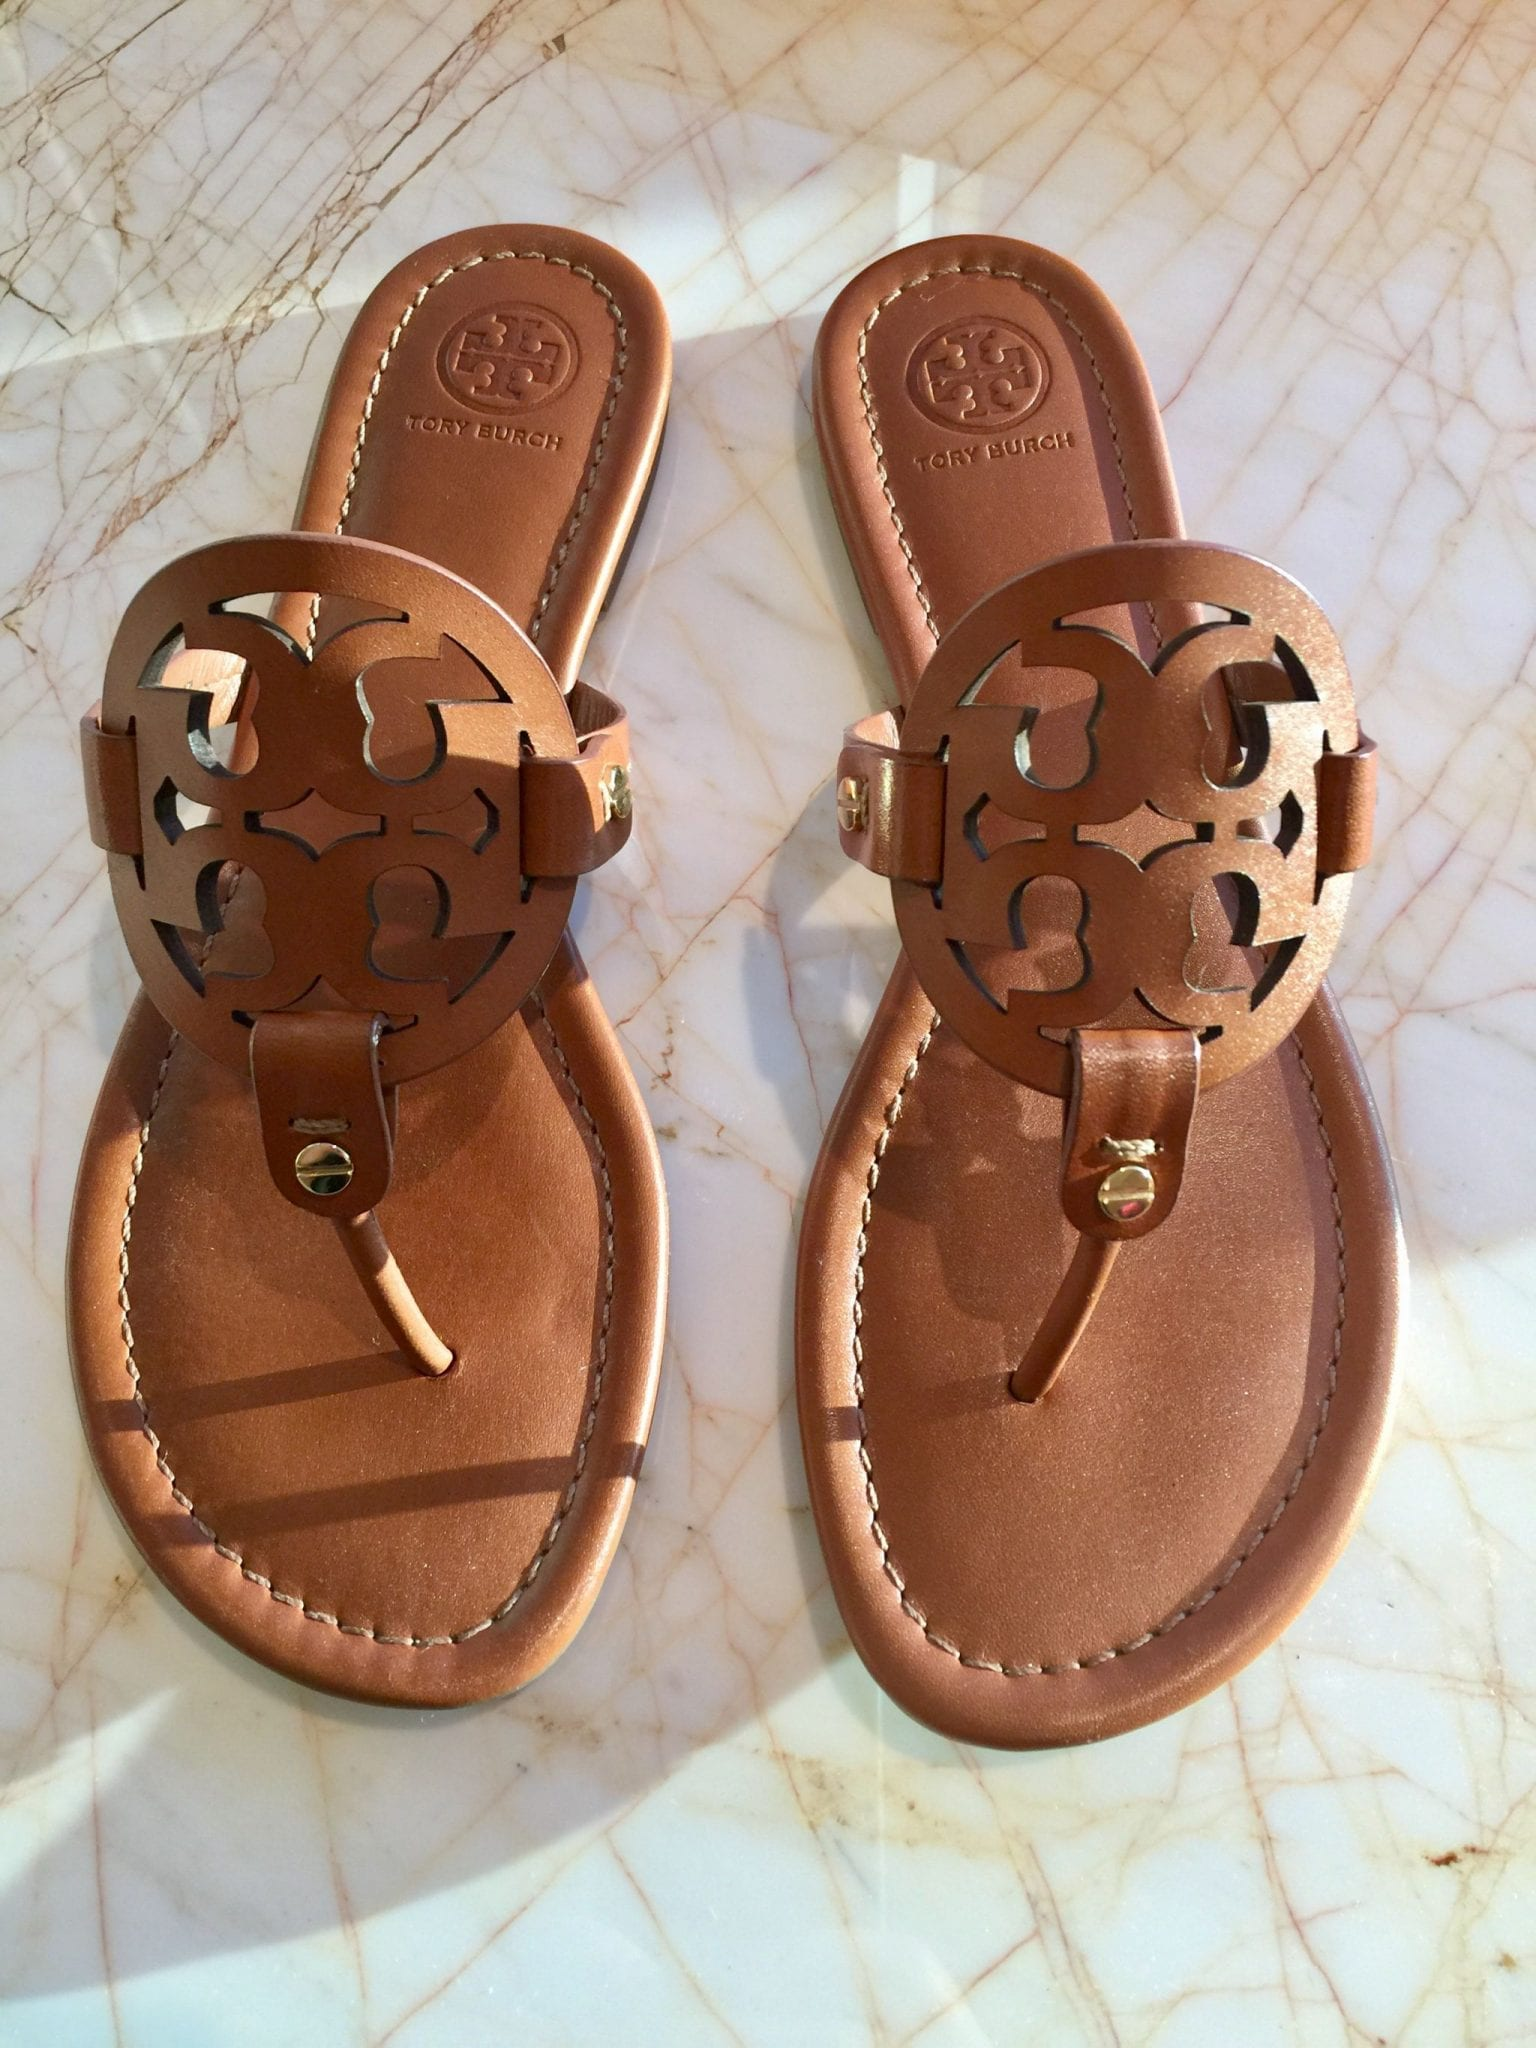 71a6906041df11 My Summer Sandals  Tory Burch Miller Sandal in Vintage Vachetta Leather